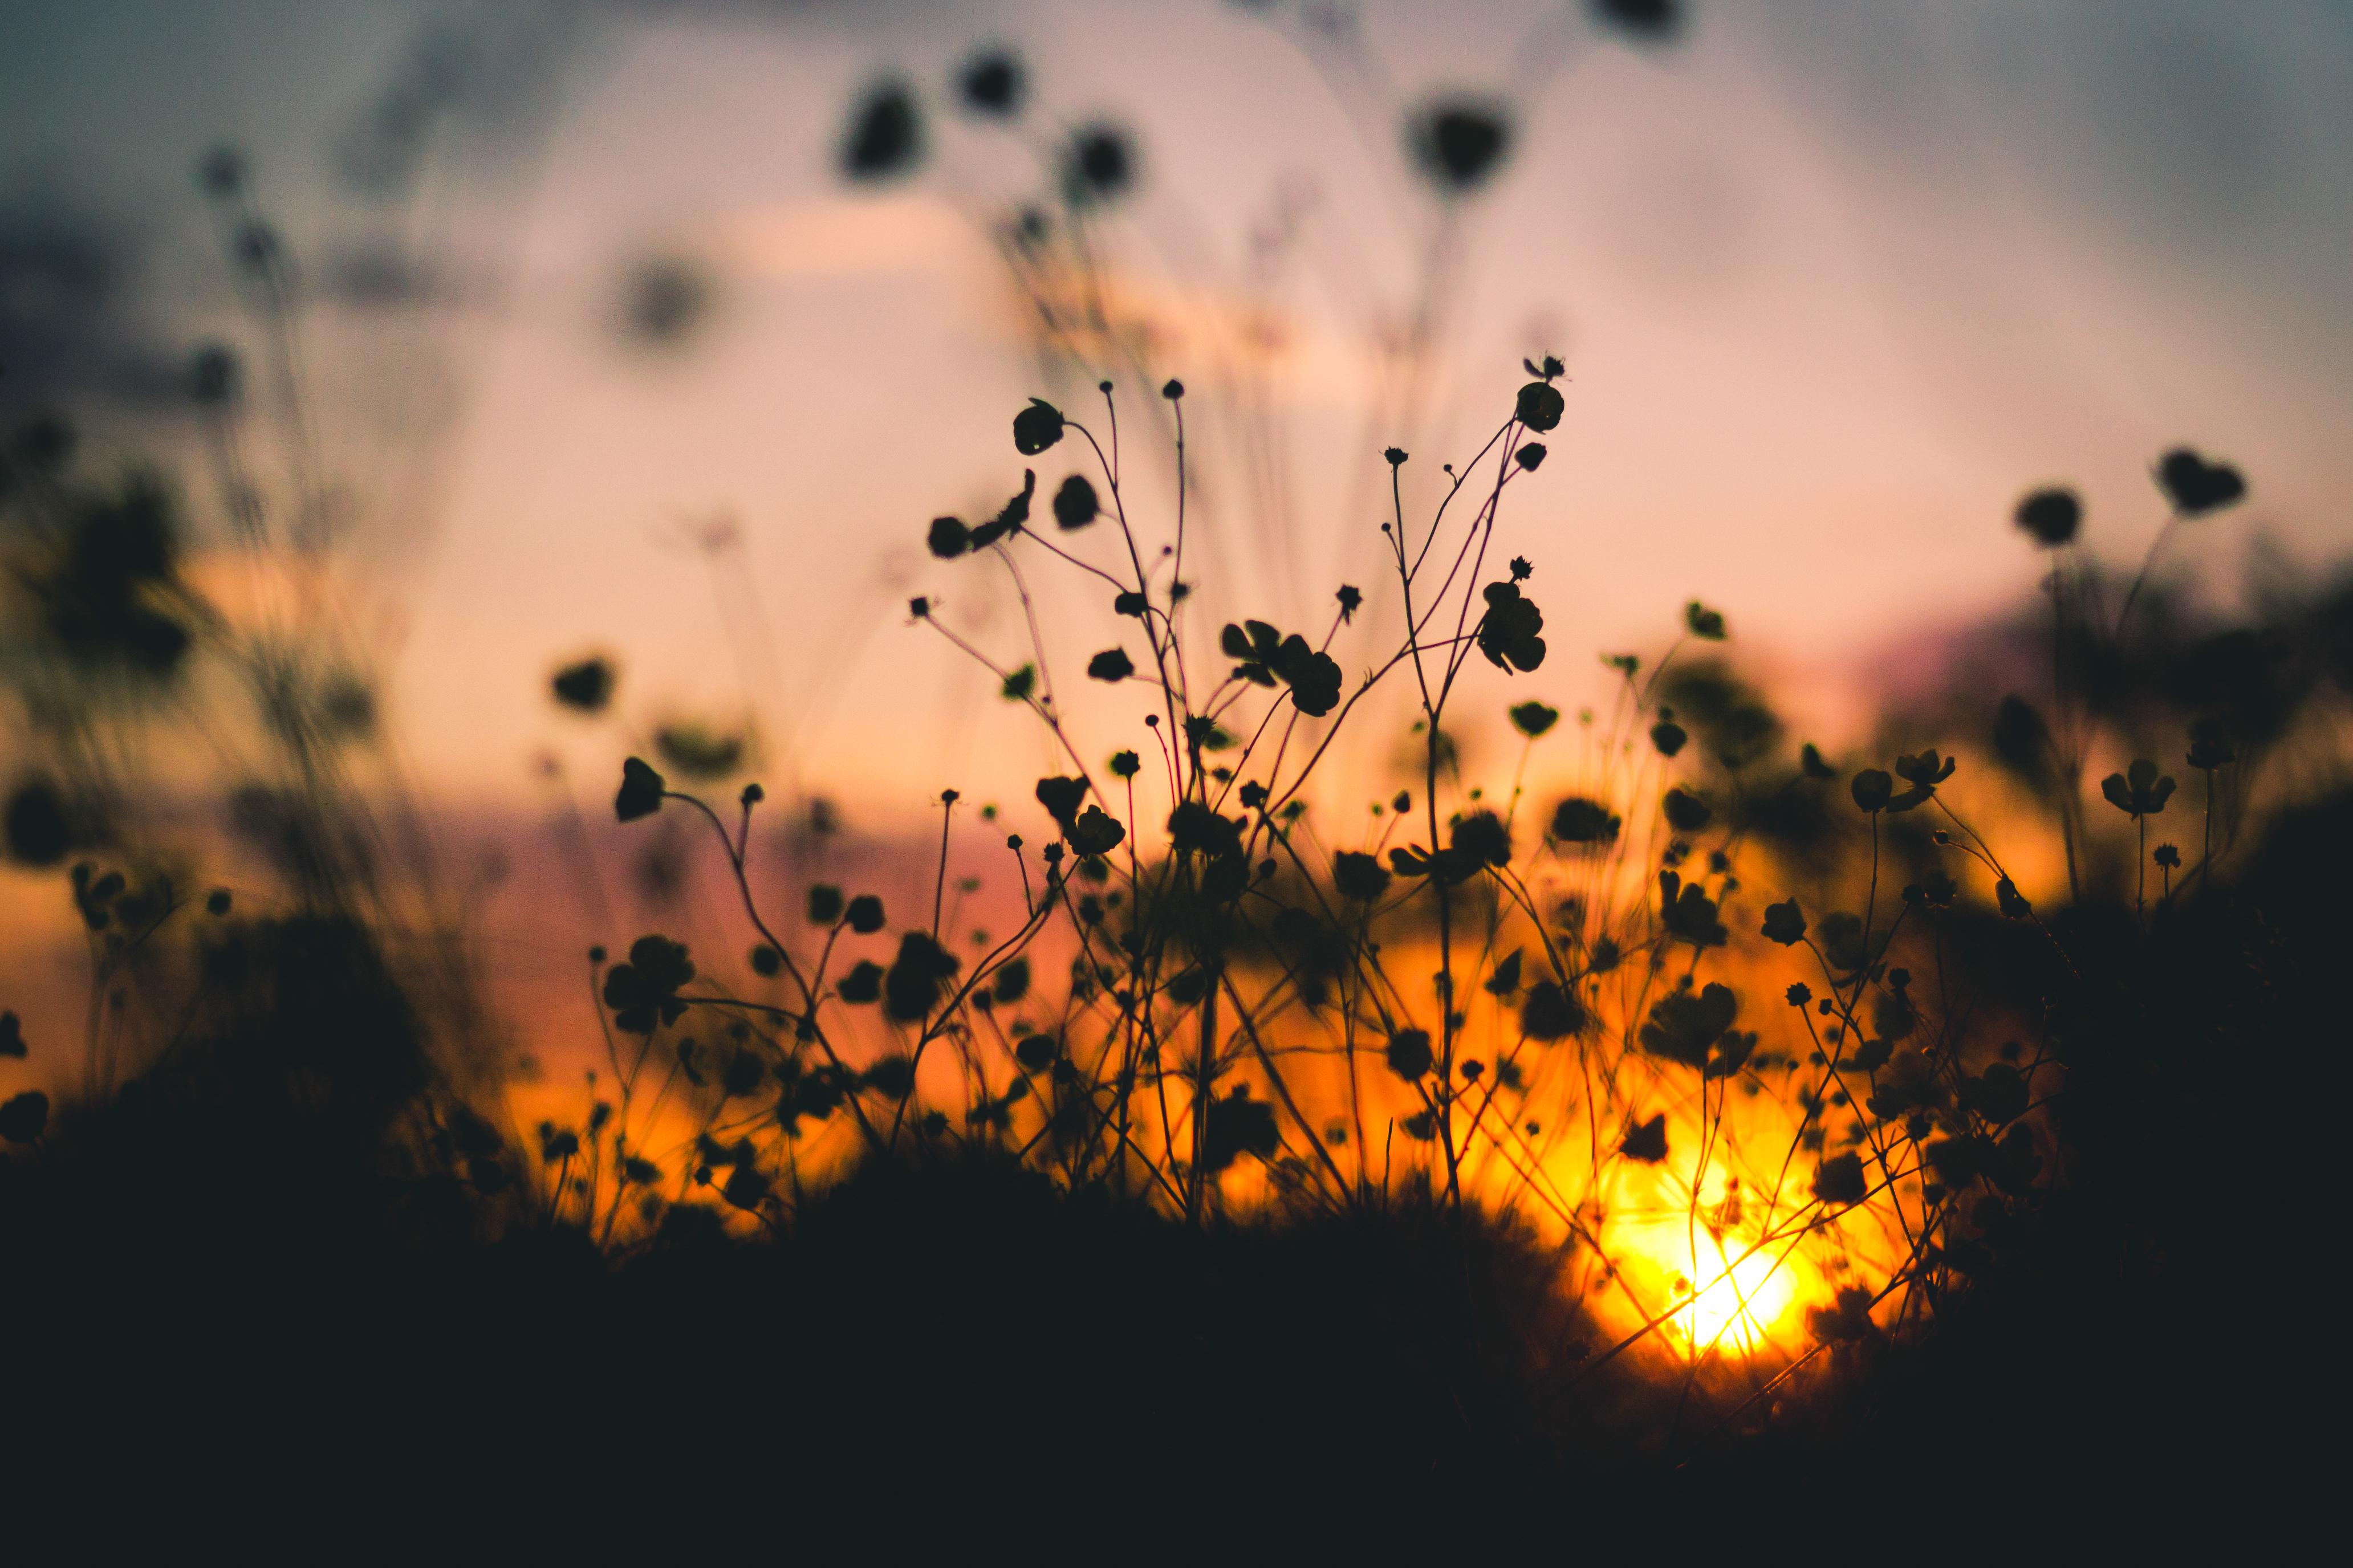 nature-sunset-flowers-silhouette